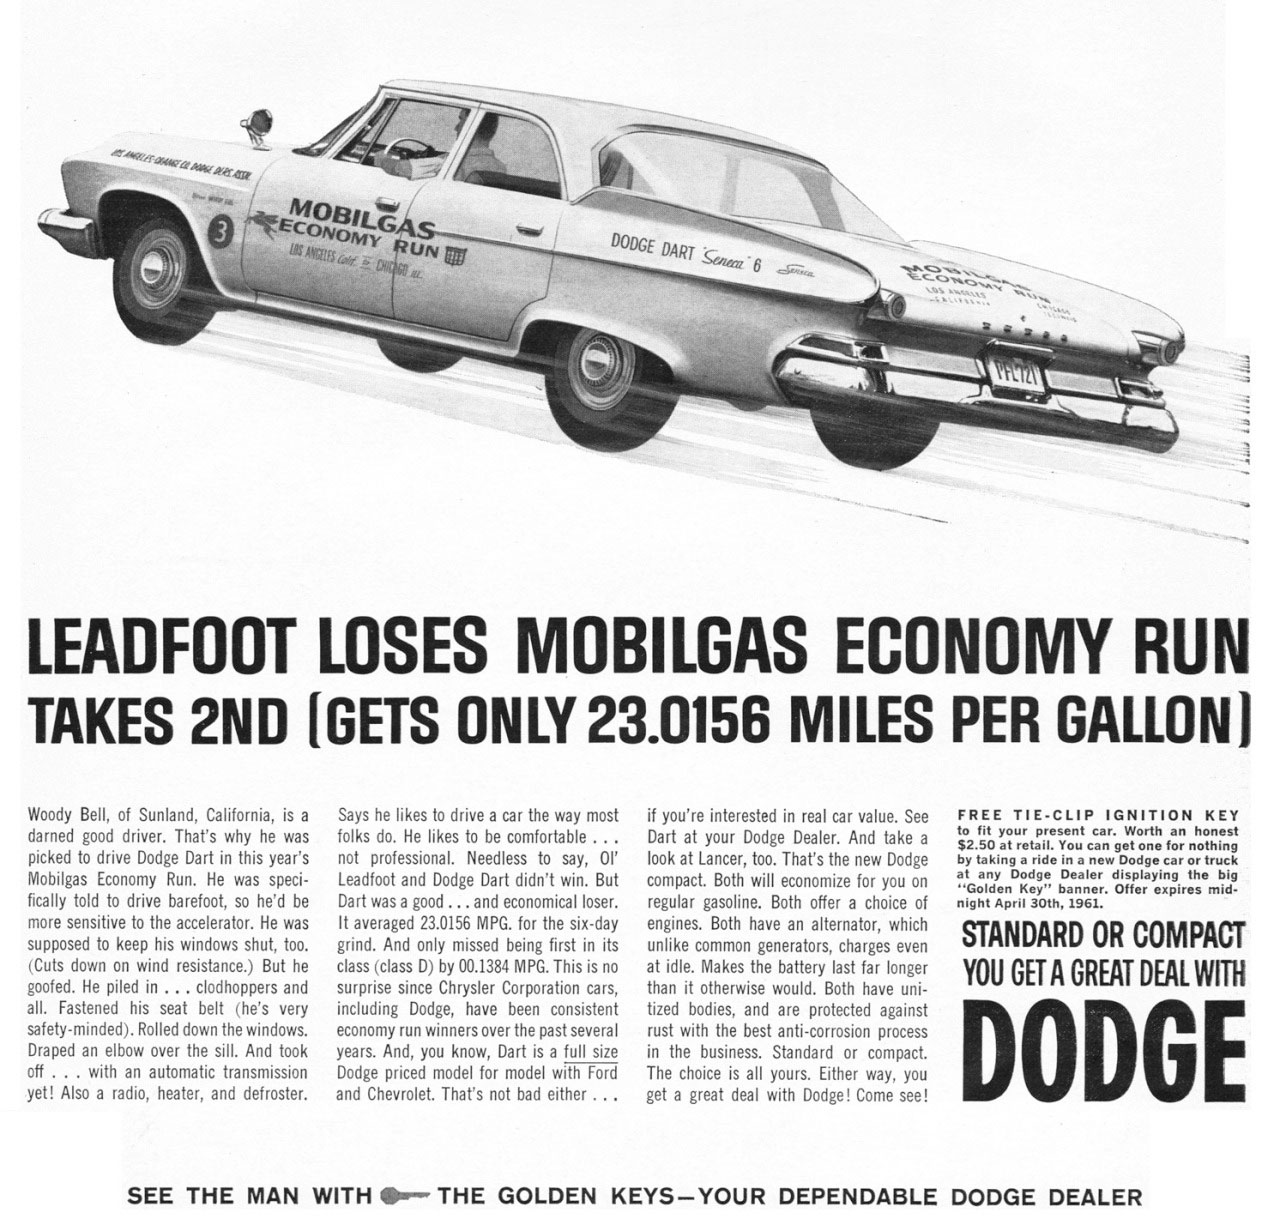 LEADFOOT LOSES MOBILGAS ECONOMY RUN TAKES 2ND [GETS ONLY 23.0156 MILES PER GALLON)  Woody Bell, of Sunland, California, is a darned good driver. That's why he was picked to drive Dodge Dart in this year's Mobilgas Economy Run. He was speci-fically told to drive barefoot, so he'd be more sensitive to the accelerator. He was supposed to keep his windows shut, too. (Cuts down on wind resistance.) But he goofed. He piled in ... clodhoppers and all. Fastened his seat belt (he's very safety-minded). Rolled down the windows. Draped an elbow over the sill. And took off . . . with an automatic transmission yet! Also a radio, heater, and defroster.  Says he likes to drive a car the way most folks do. He likes to be comfortable ... not professional. Needless to say, 01' Leadfoot and Dodge Dart didn't win. But Dart was a good ... and economical loser. It averaged 23.0156 MPG. for the six-day grind. And only missed being first in its class (class D) by 00.1384 MPG. This is no surprise since Chrysler Corporation cars, including Dodge, have been consistent economy run winners over the past several years. And, you know, Dart is a full size Dodge priced model for model with Ford and Chevrolet. That's not bad either ...  if you're interested in real can value. See Dart at your Dodge Dealer. And take a look at Lancer, too. That's the new Dodge compact. Both will economize for you on regular gasoline. Both offer a choice of engines. Both have an alternator, which unlike common generators, charges even at idle. Makes the battery last far longer than it otherwise would. Both have uni-tized bodies, and are protected against rust with the best anti-corrosion process in the business. Standard or compact. The choice is all yours. Either way, you get a great deal with Dodge! Come see!  FREE TIE-CLIP IGNITION KEY to fit your present car. Worth an honest $2.50 at retail. You can get one for nothing by taking a ride in a new Dodge car or truck at any Dodge Dealer displaying the big ''Golden Key'' banner. night April 30th, 1961. Offer expires  STANDARD OR COMPACT YOU GET A GREAT DEAL WITH  DODGE  SEE THE MAN WITH •■•THE GOLDEN KEYS—YOUR DEPENDABLE DODGE DEALER